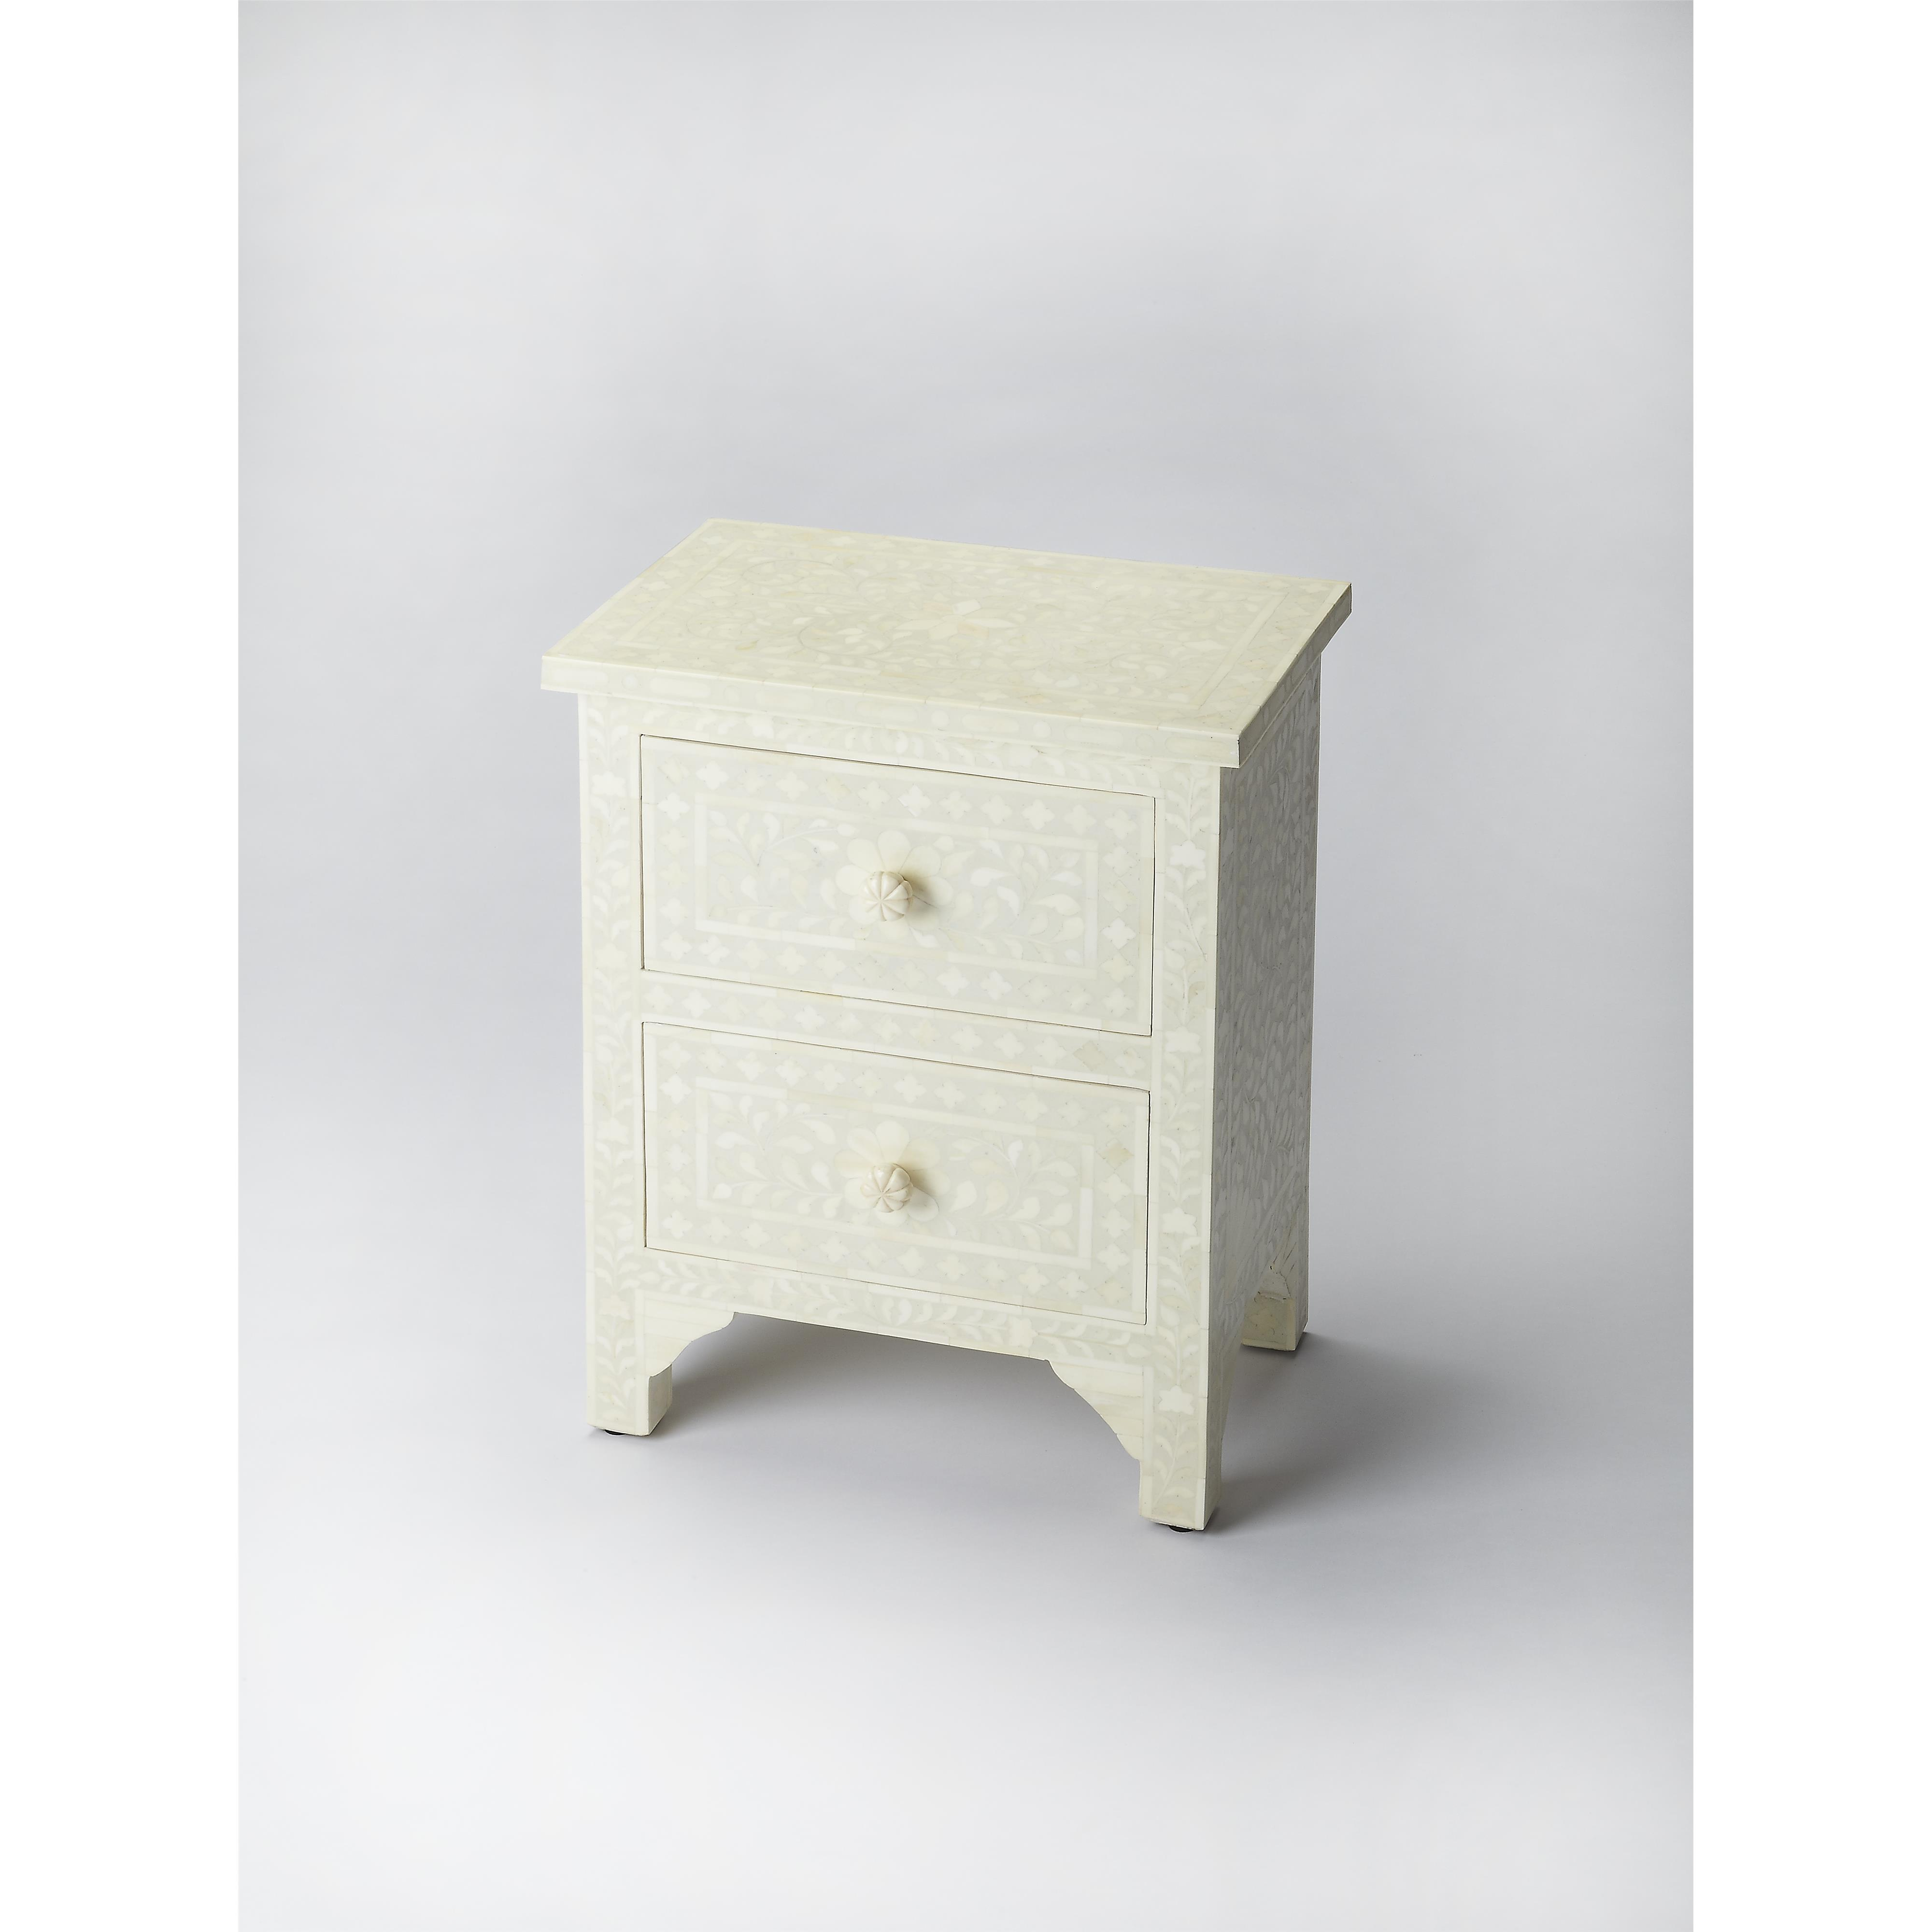 Butler Specialty Company Bone Inlay Accent Chest - Item Number: 2865325